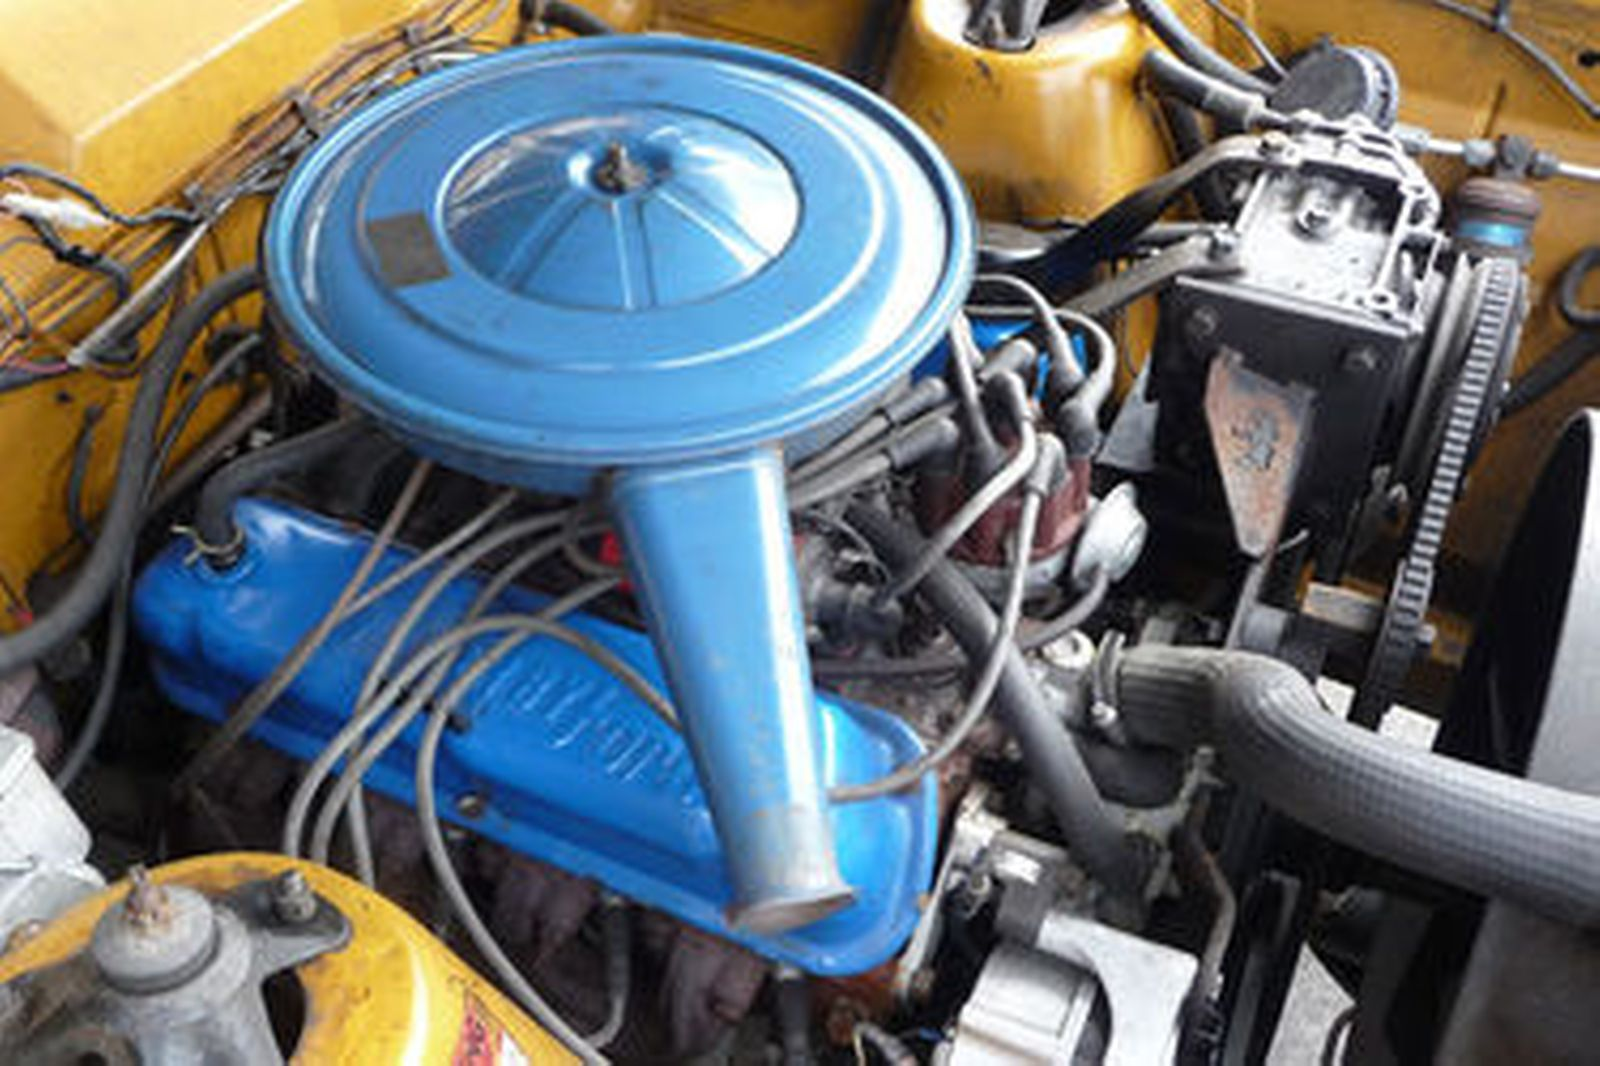 Graphic furthermore Lincoln Ls Engine Big together with Hqdefault together with Pb N moreover D Distributor Cap Original Firing Order Sidekick Distributor Cap. on ford engine firing order